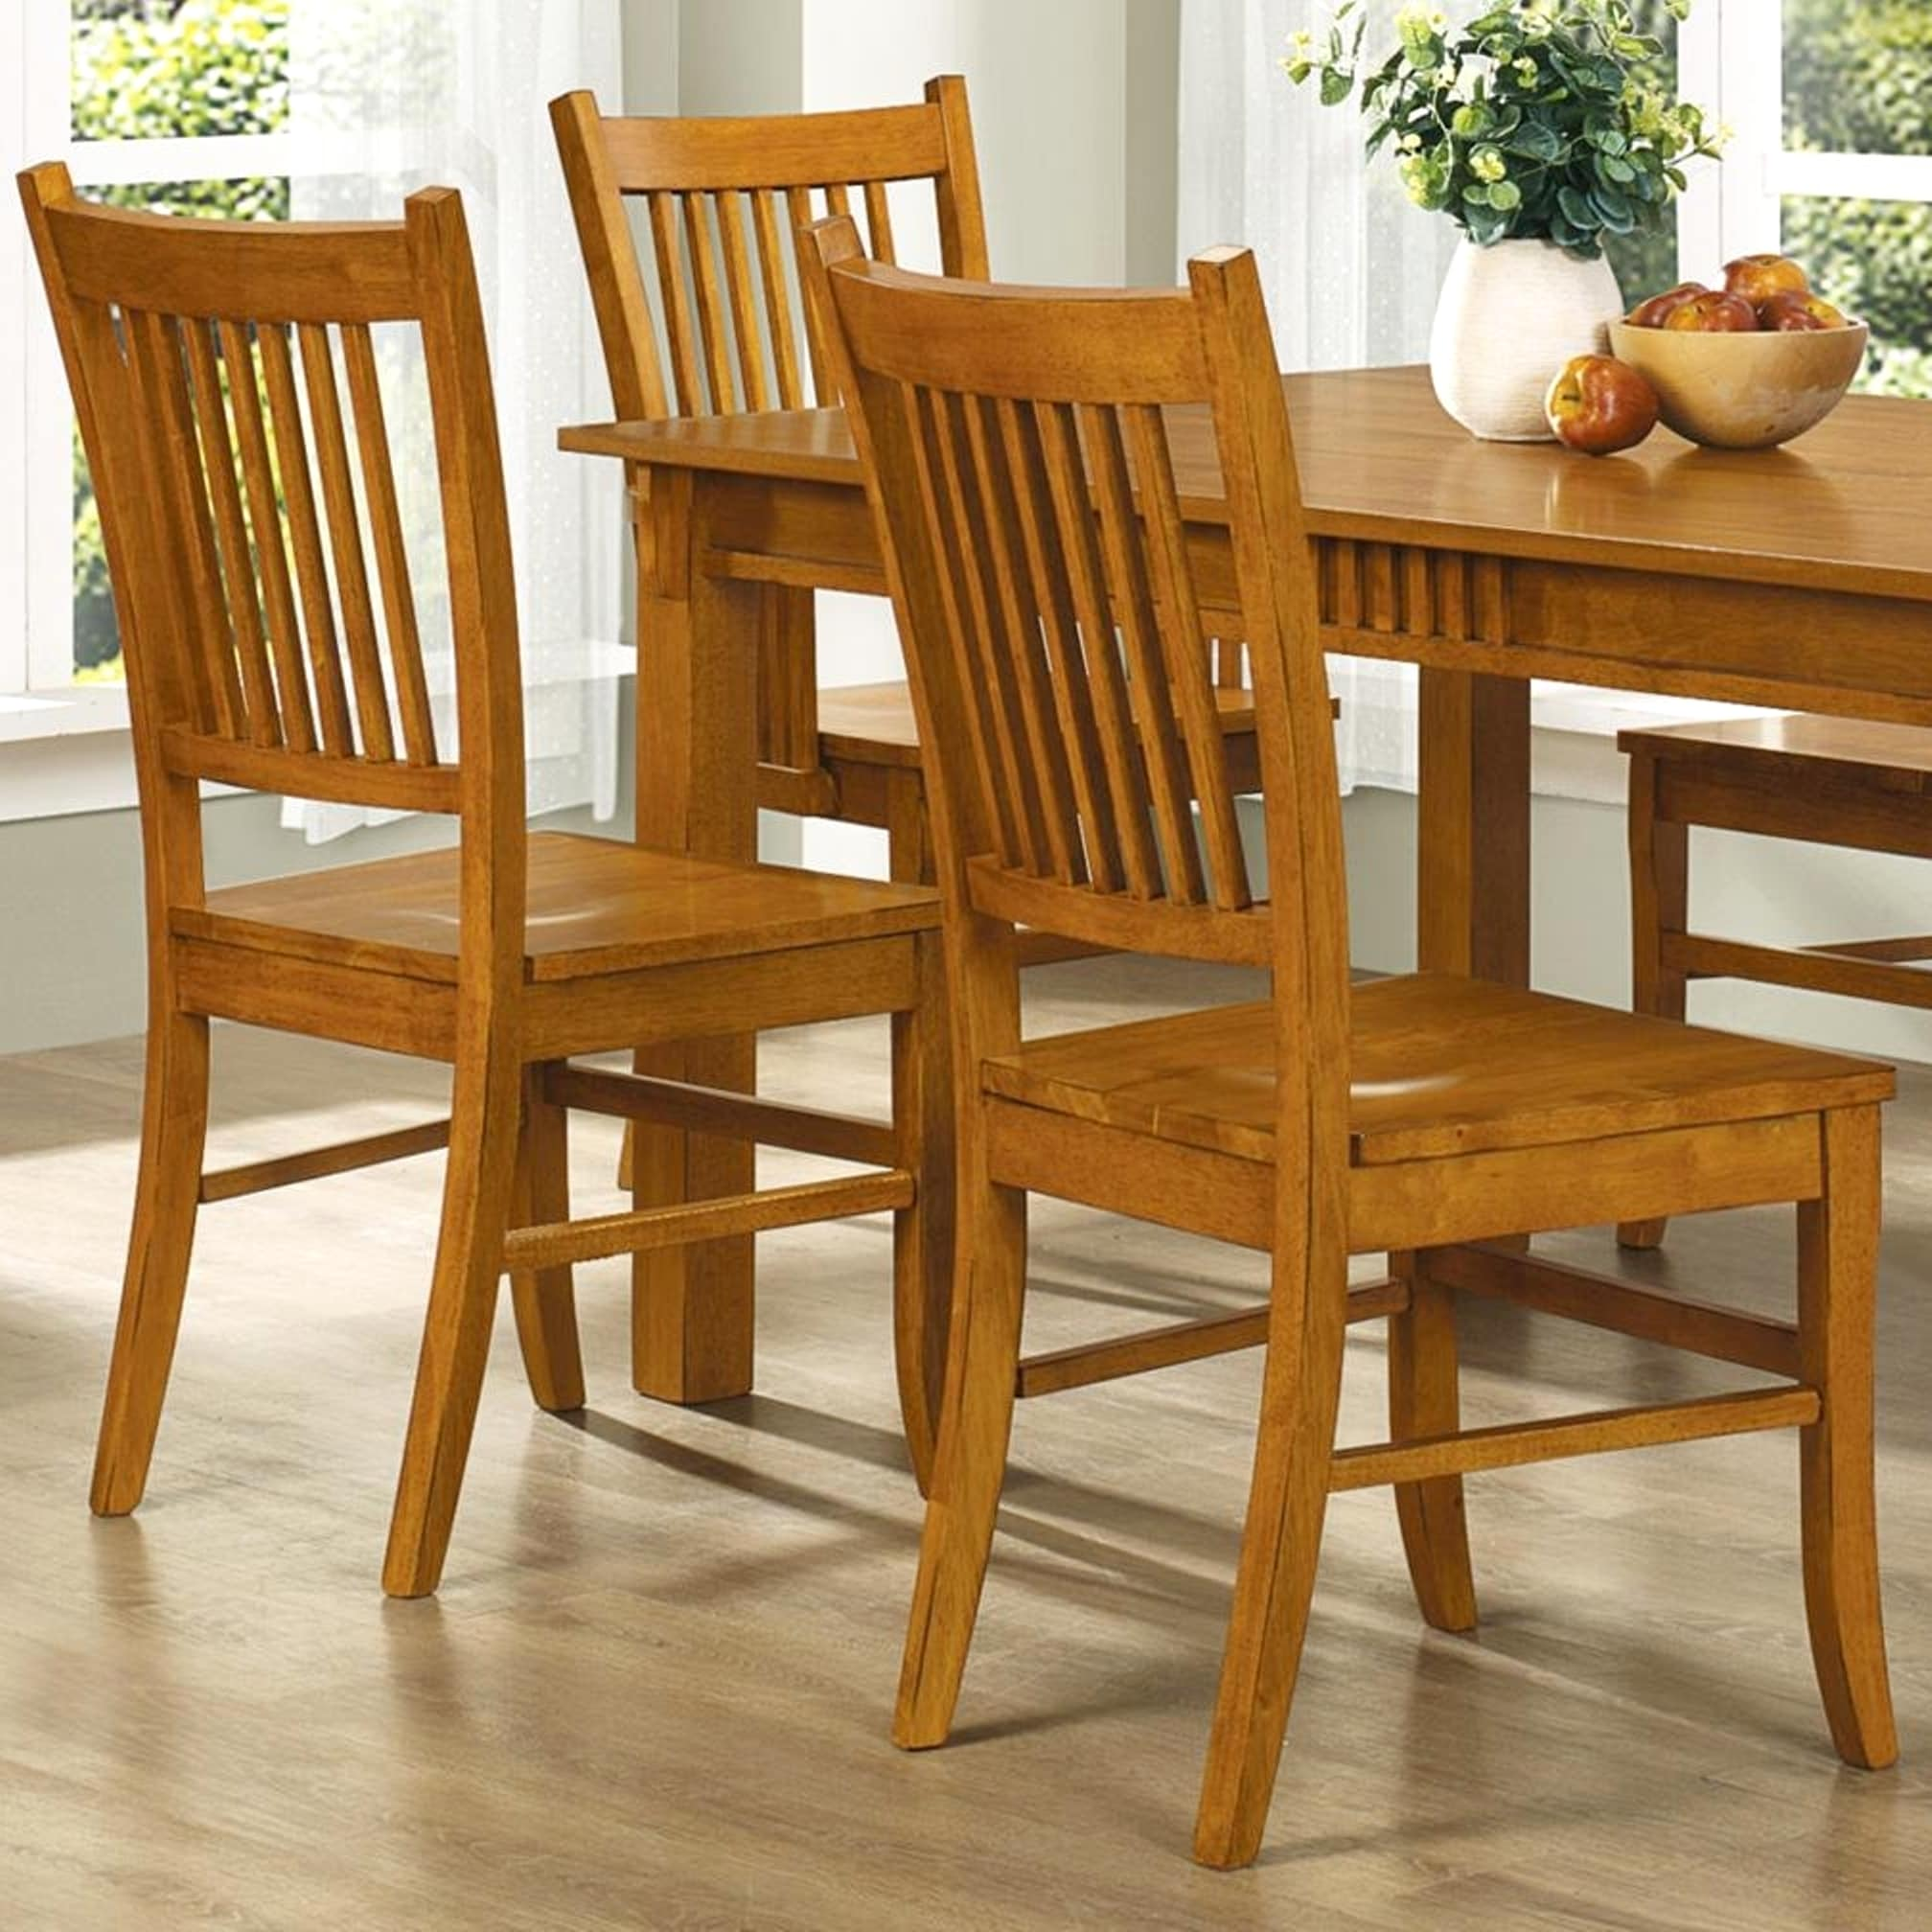 Mid Century Design Wood Mission Country Style Dining Chairs Set Of 2 Free Shipping Today 11614095